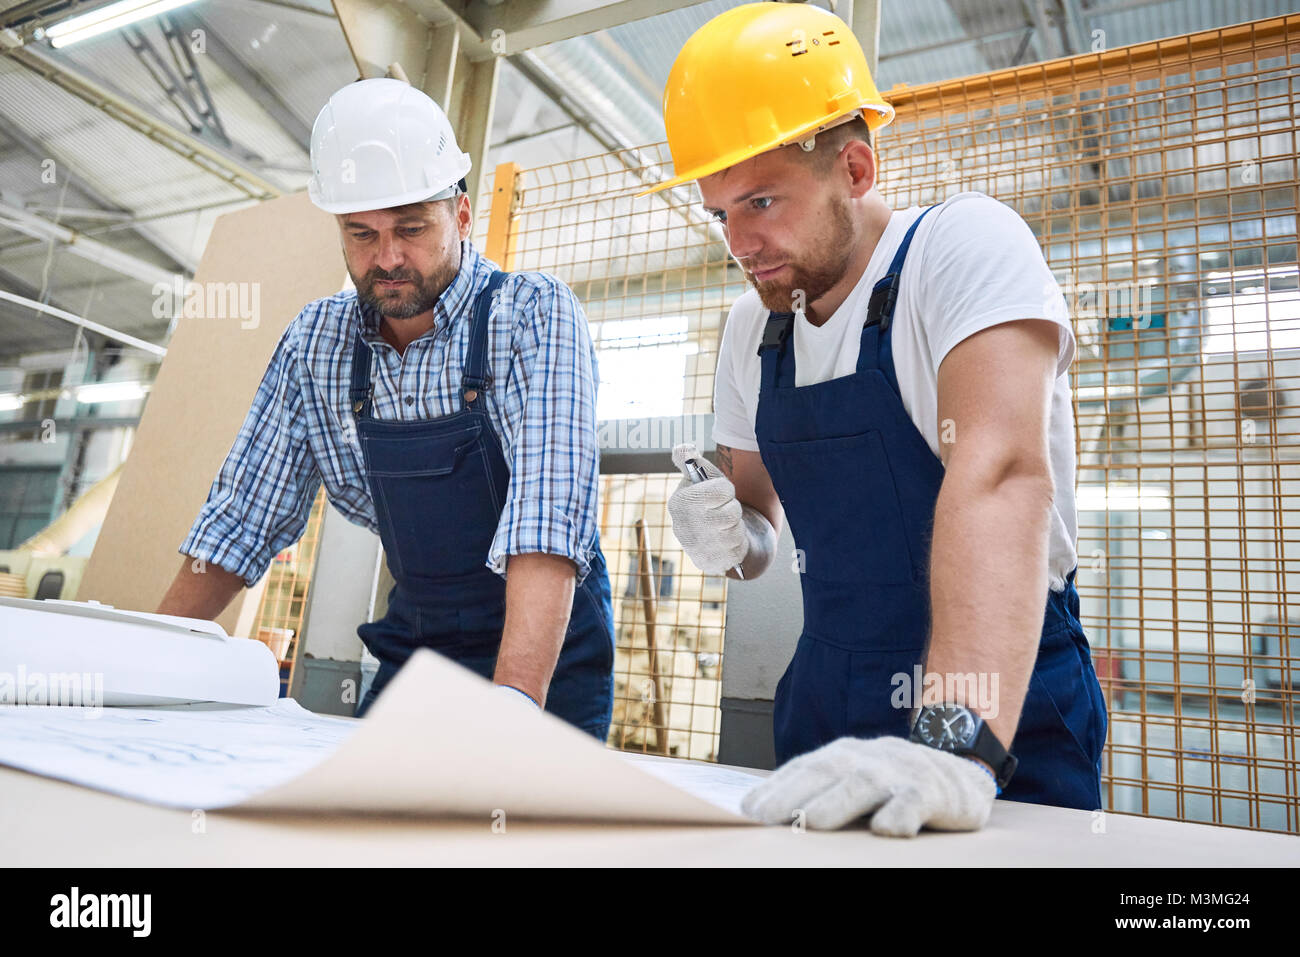 Two Construction Workers Inspecting Plans Stock Photo